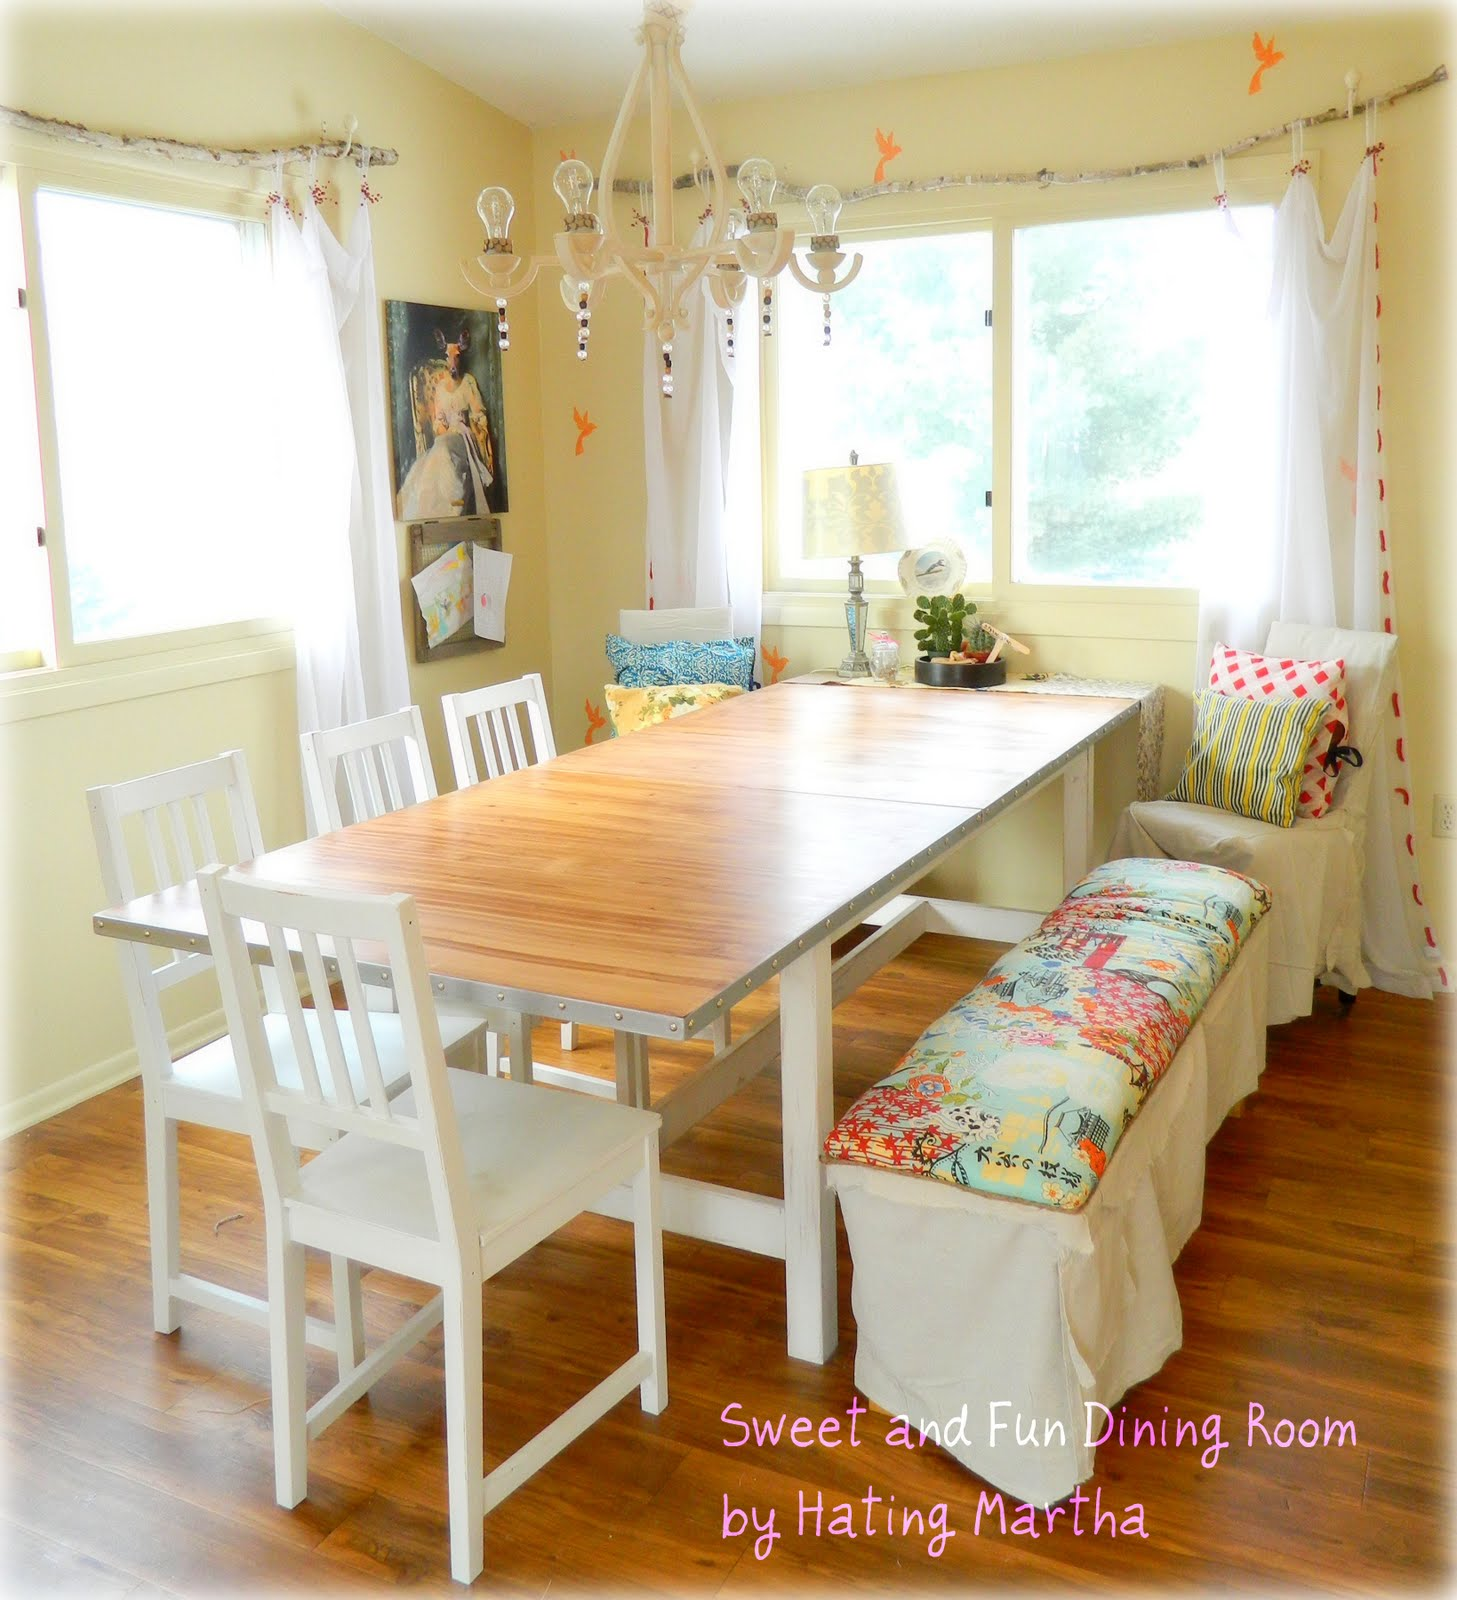 Fabulous simple IKEA table update that takes a boring IKEA table and transforms it into a charming